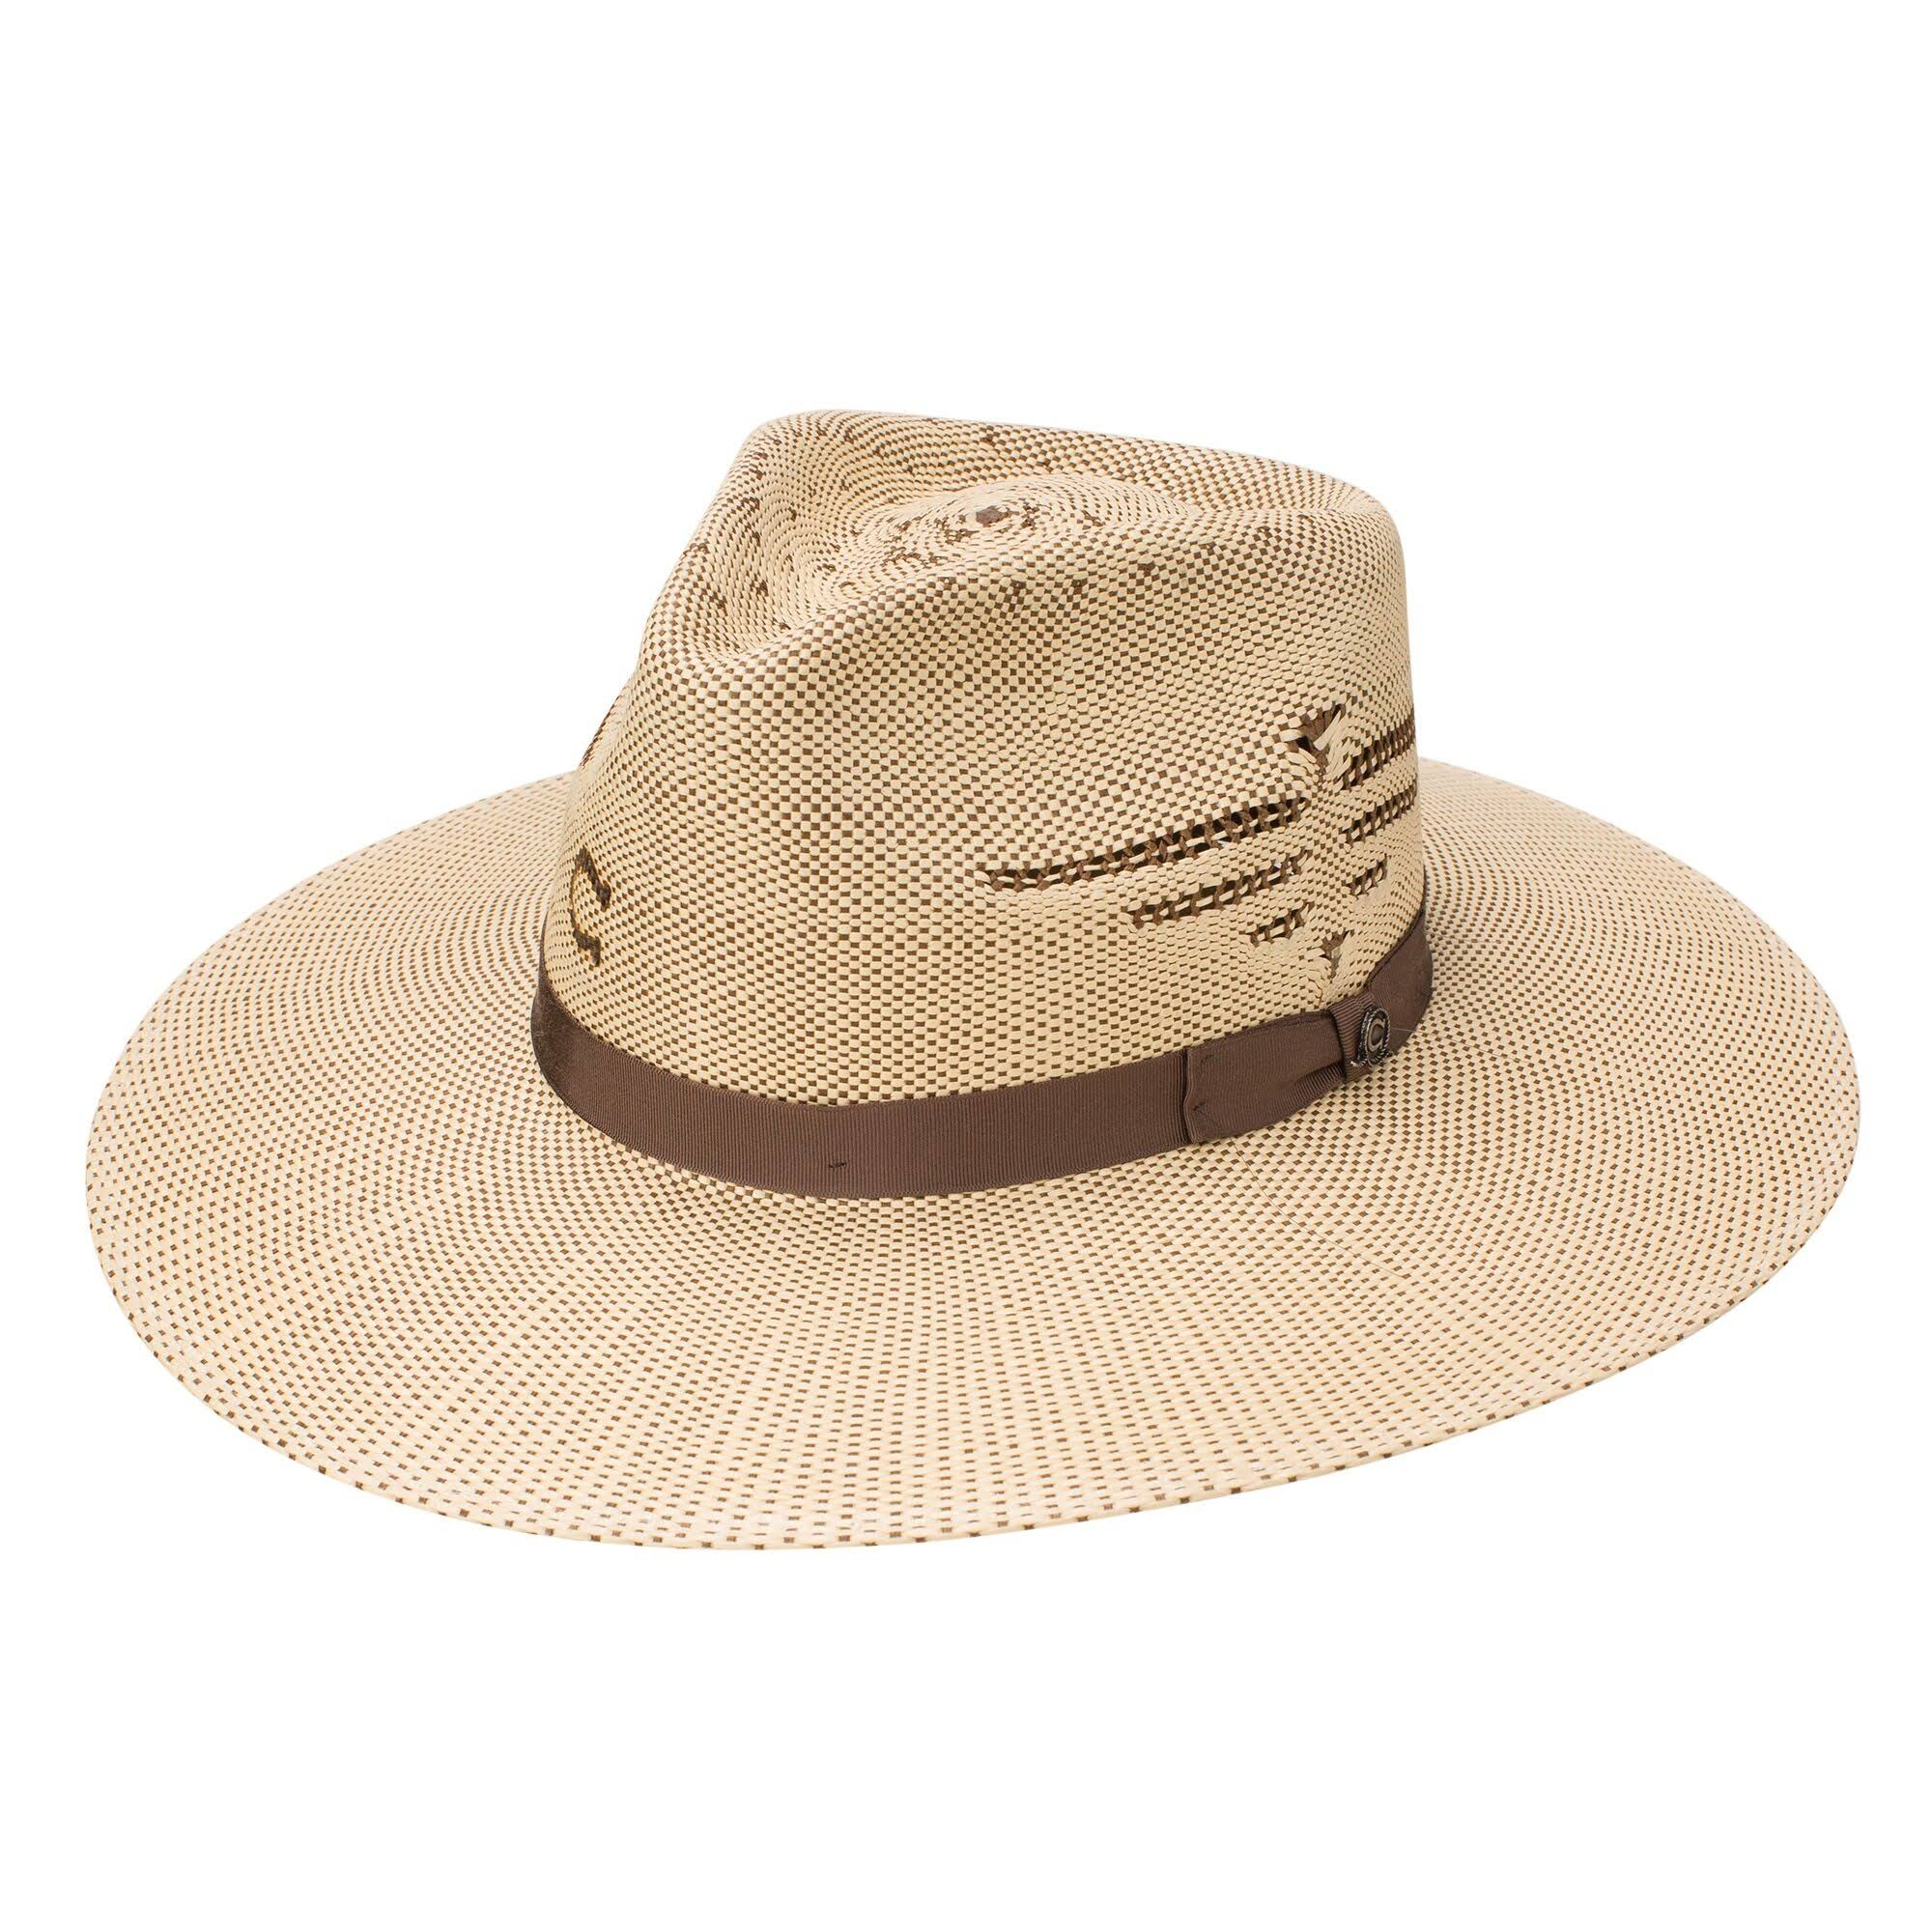 Charlie 1 Horse Mexico Shore Natural Straw Hat Tan/Brown M